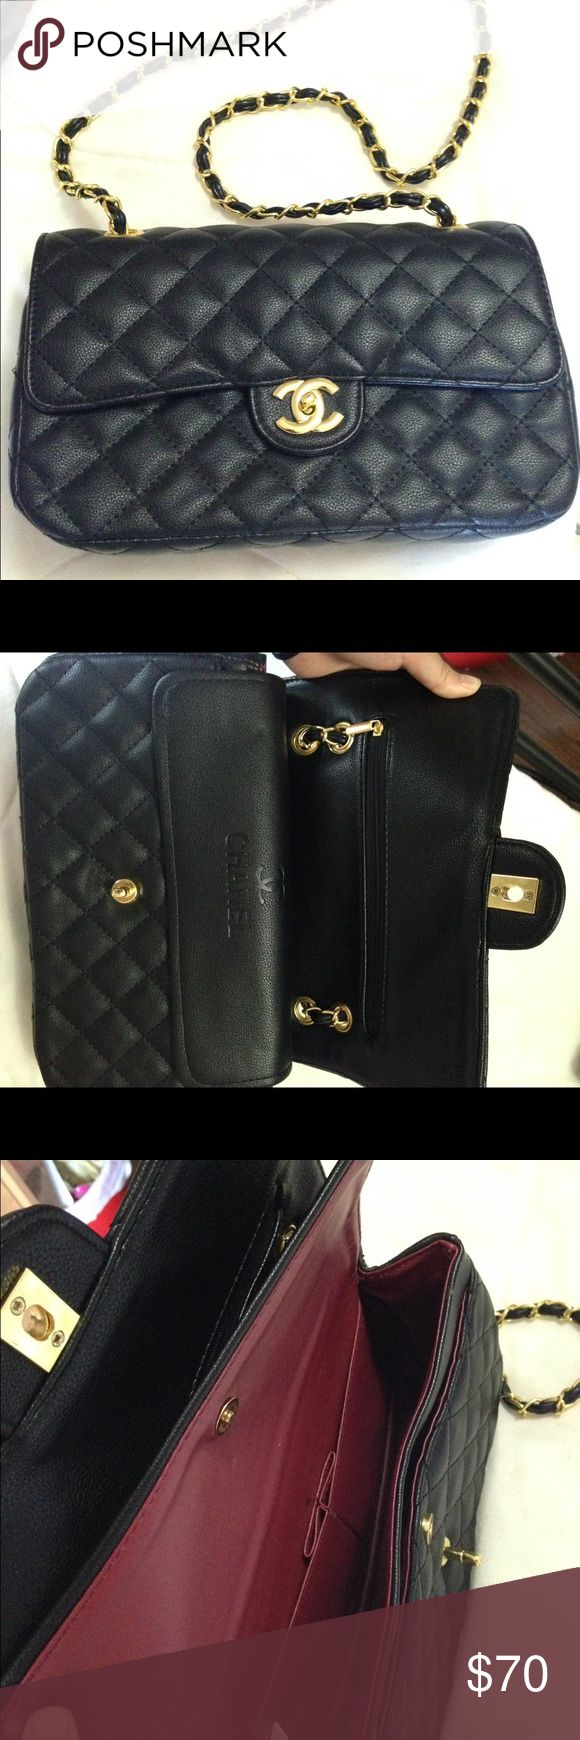 Best 25+ Chanel flap bag price ideas on Pinterest | Classic beetle ... : chanel black quilted bag price - Adamdwight.com